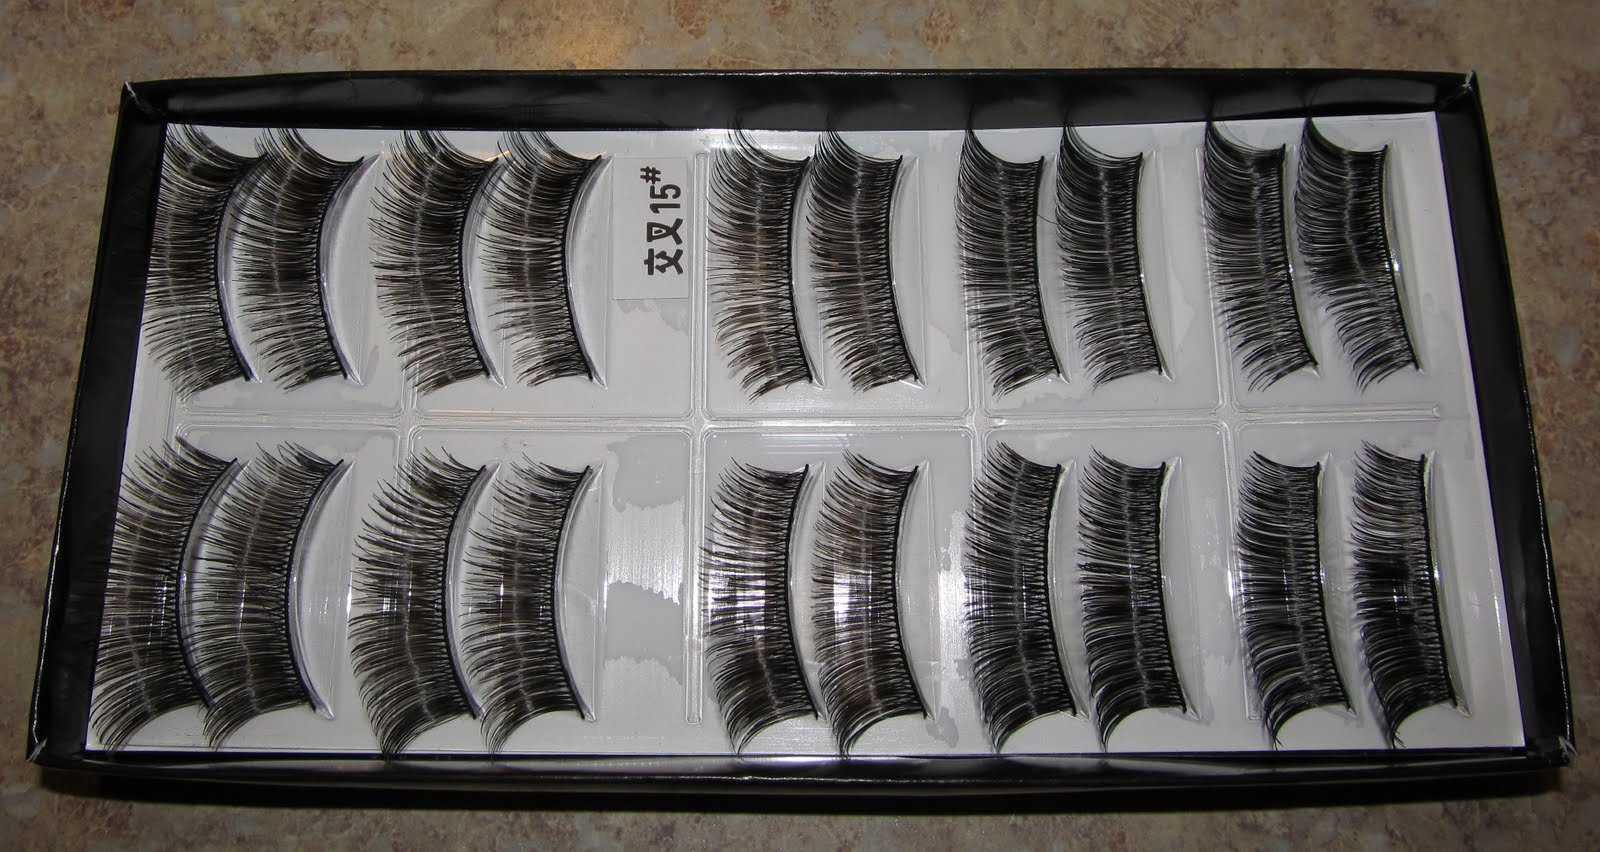 KKCenterHK - False Lashes Review